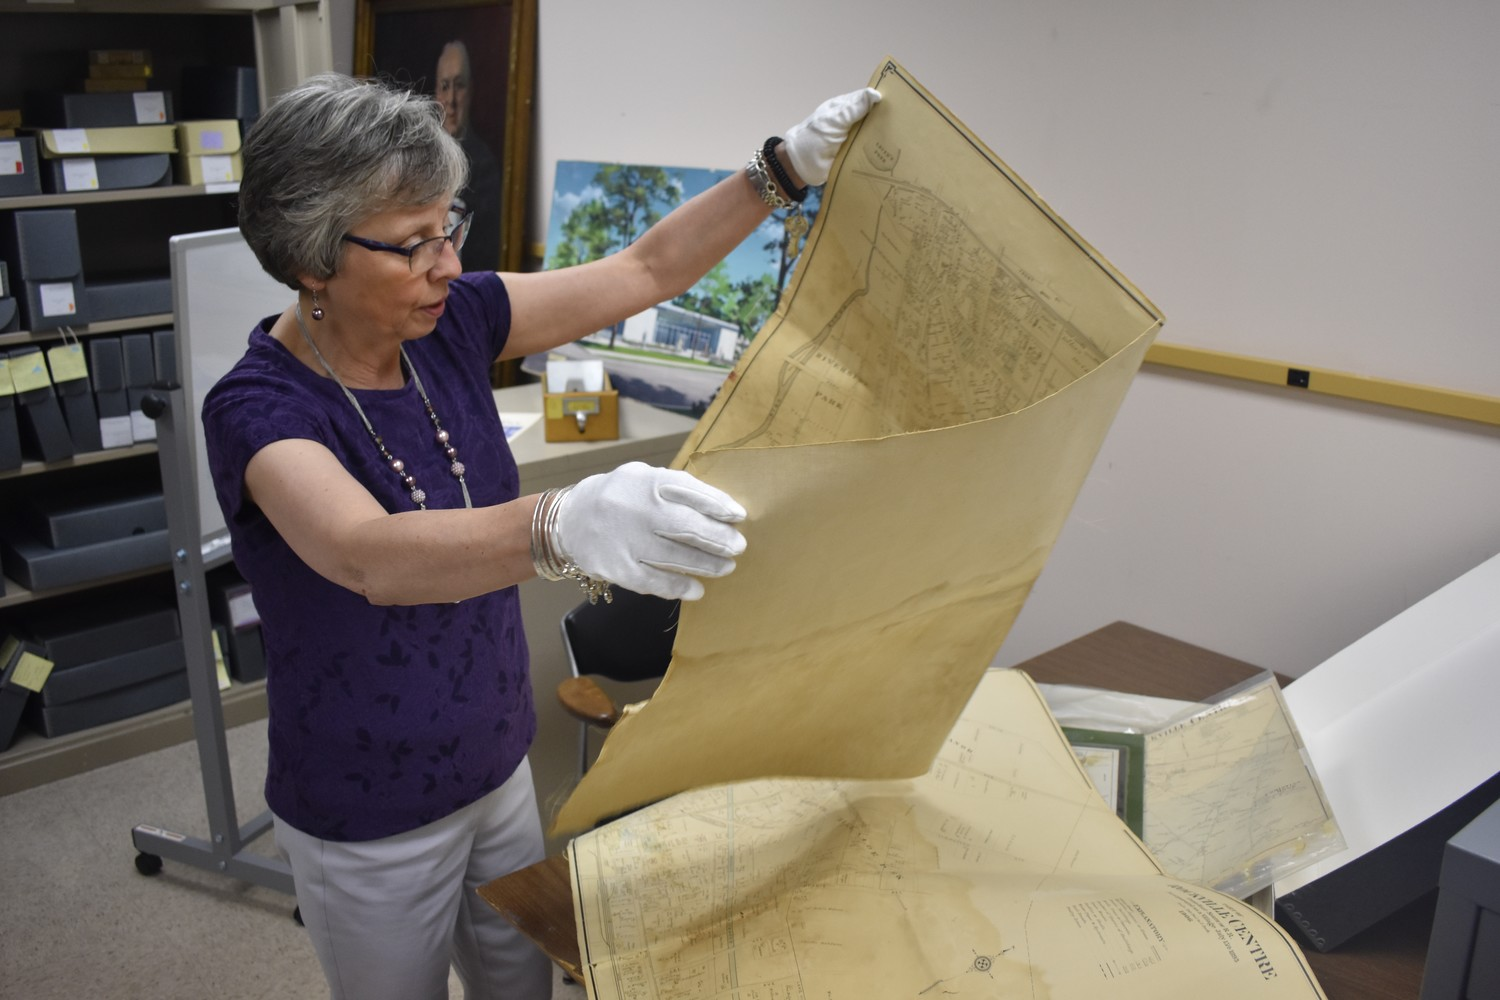 Alene Scoblete, the Rockville Centre Public Library's archivist and local history librarian, analyzed a 1906 map of Rockville Centre in the facility's basement.